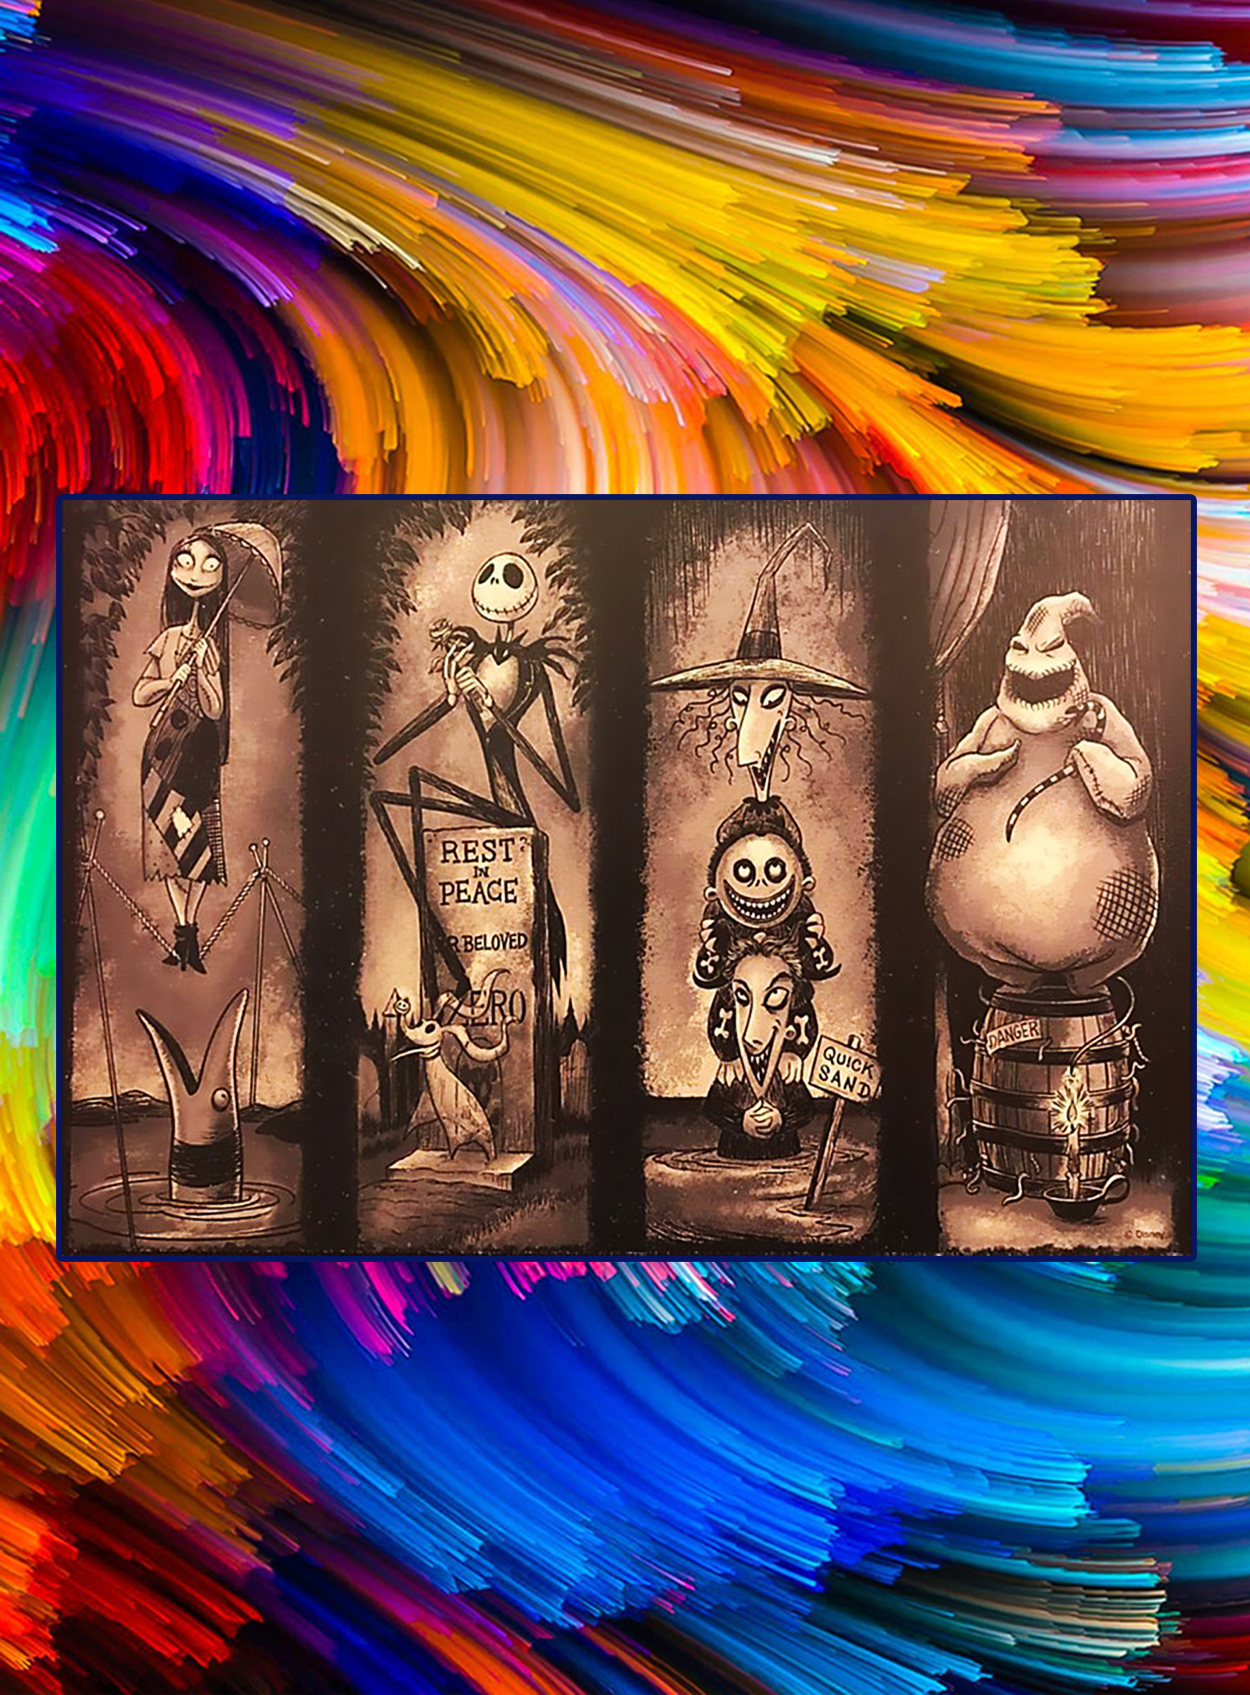 Nightmare before christmas stretching room poster - A2